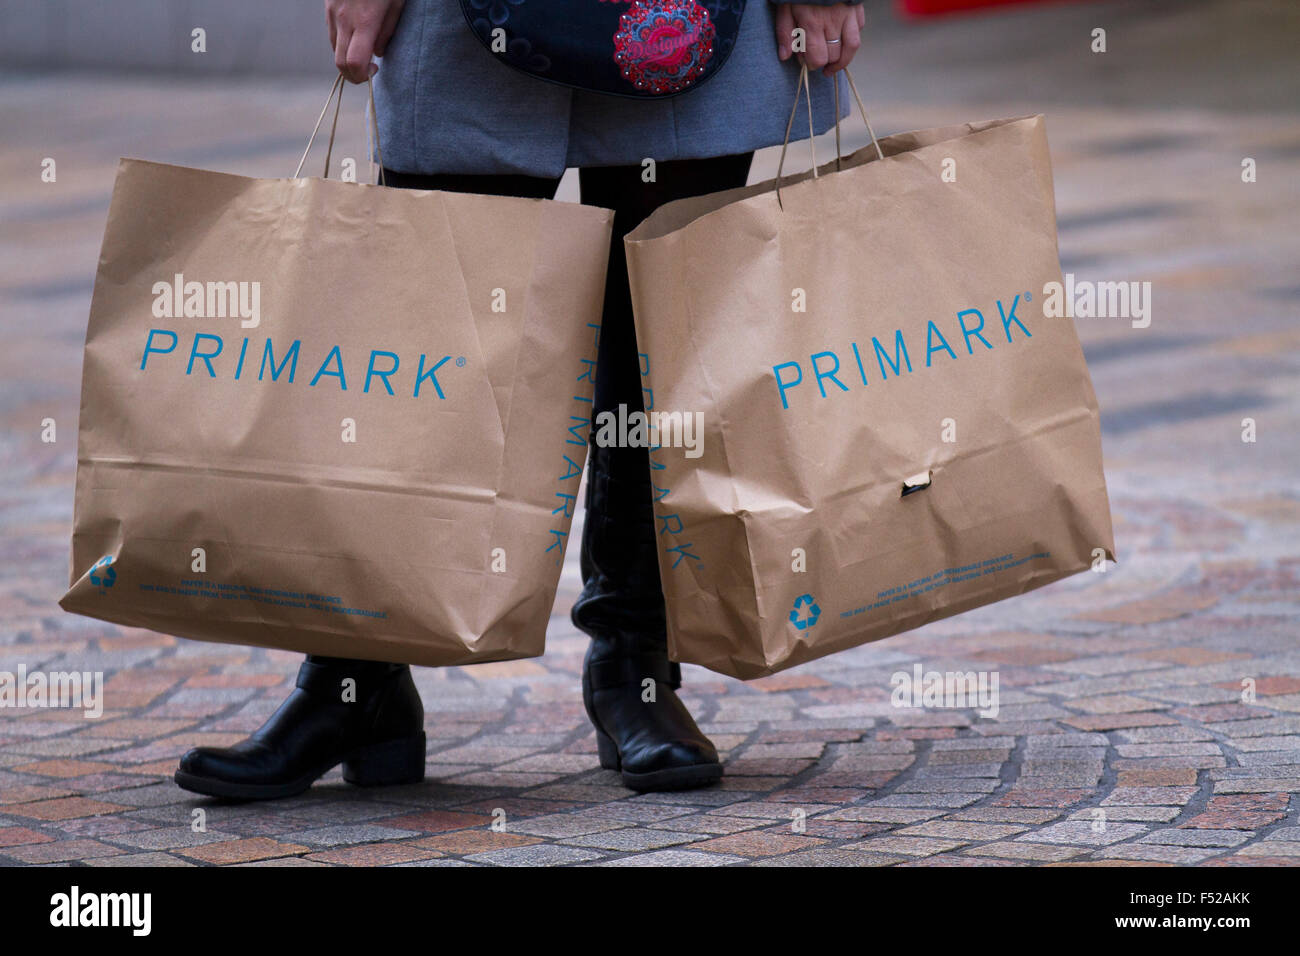 Shoppers with bag of Primark purchases at Houndshill Shopping Centre, Bank Hey St, Blackpool FY1 4RY - Stock Image